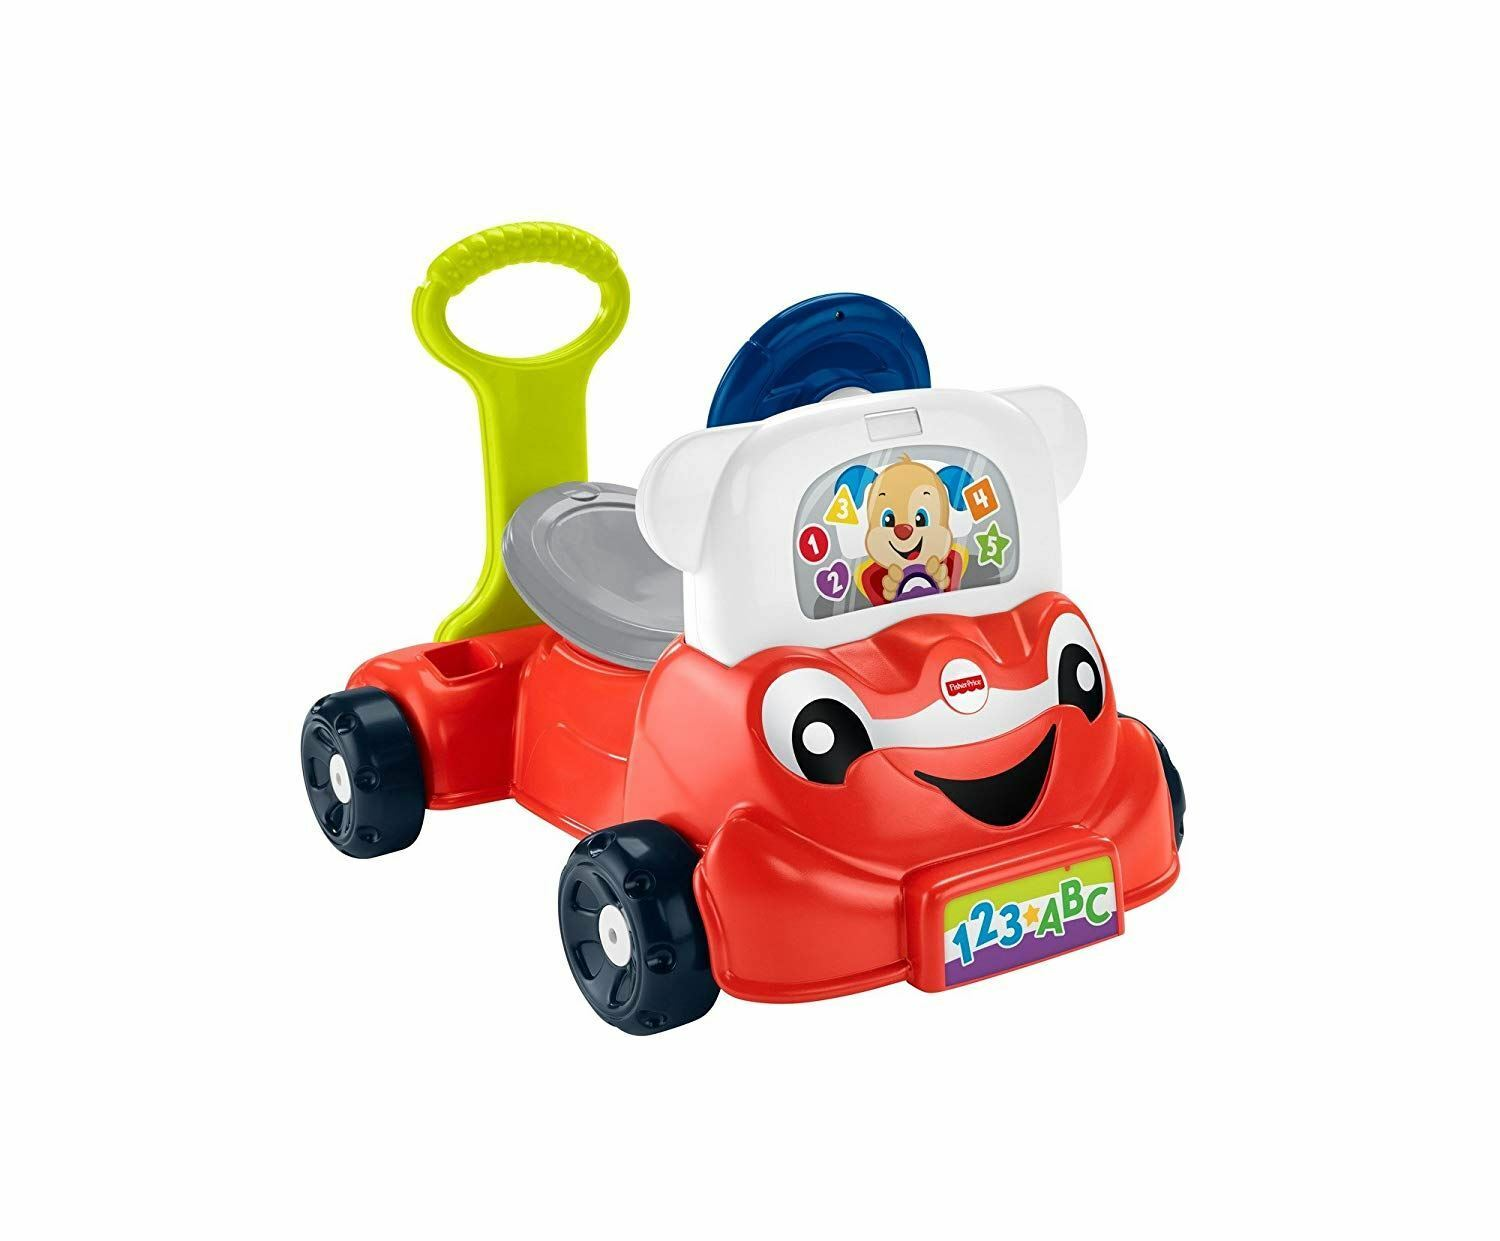 Fisher Price Laugh N Learn 3 in 1 Smart Toy Play Car